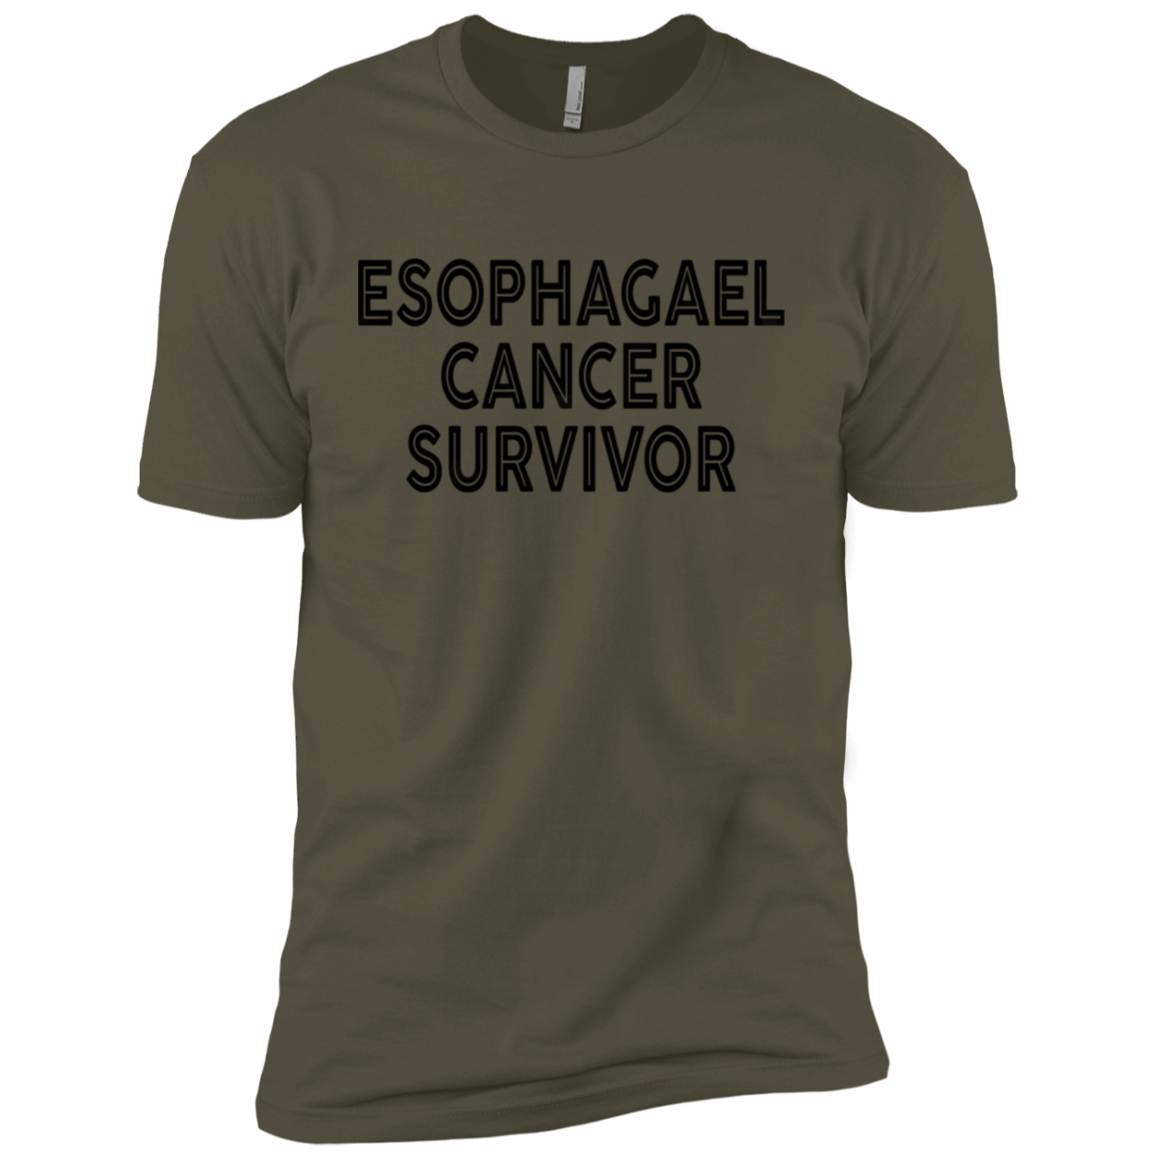 Esophagael Cancer Survivor Men's Classic Tee